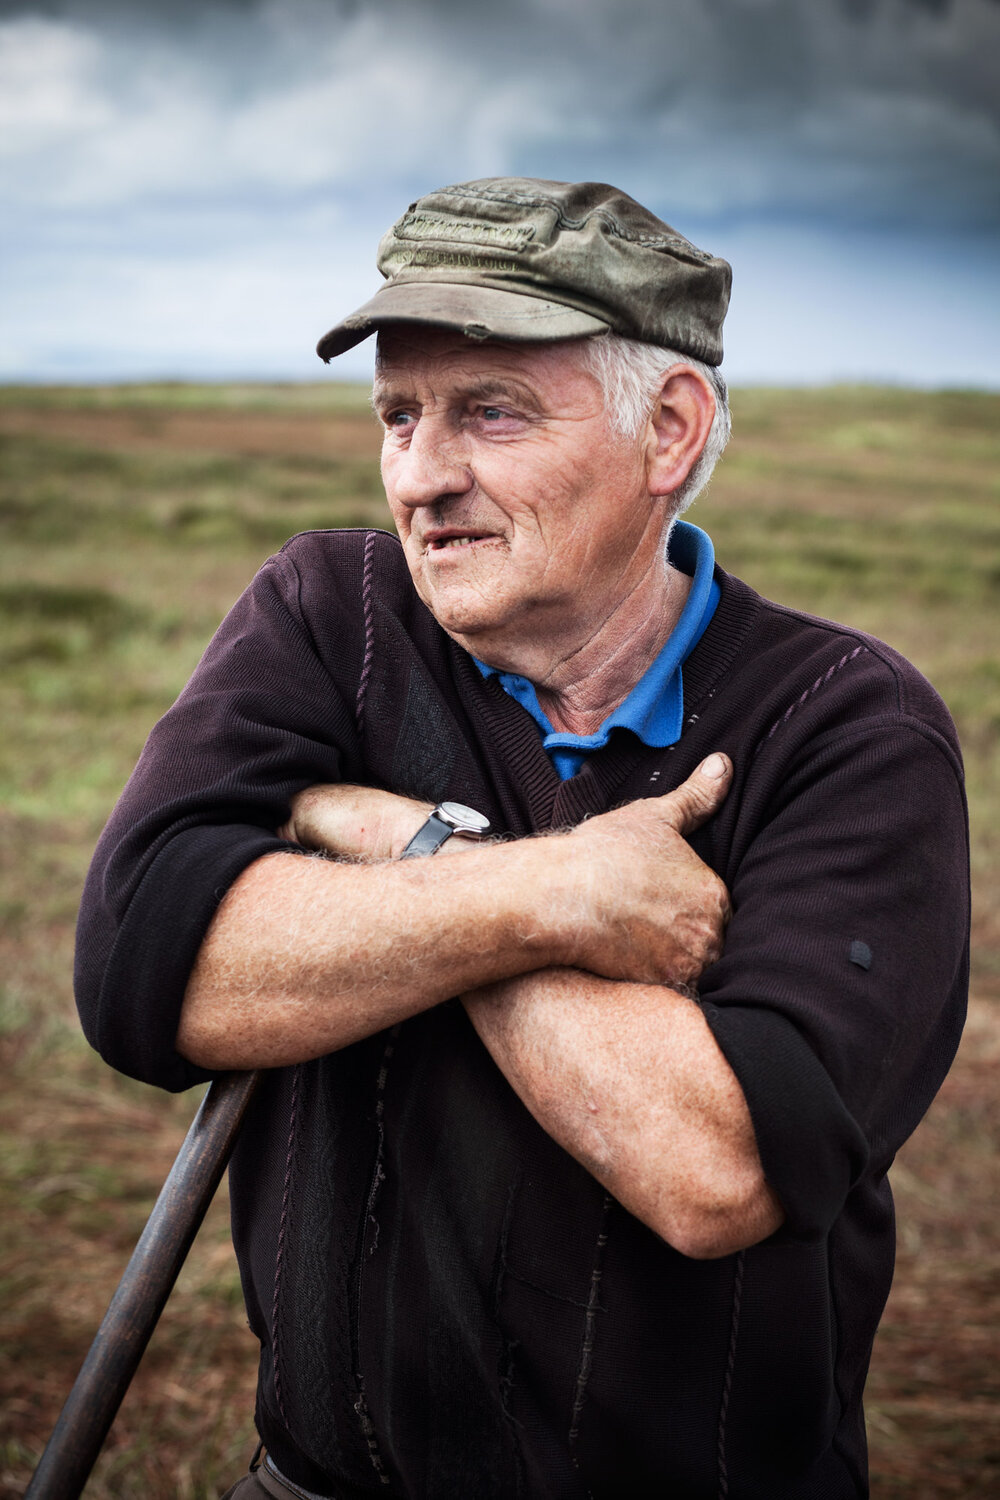 Gene has spent a lifetime of summers cutting, footing and bringing home the turf. Time on the bog from sunrise to sunset is his life for 3-4 months every year.